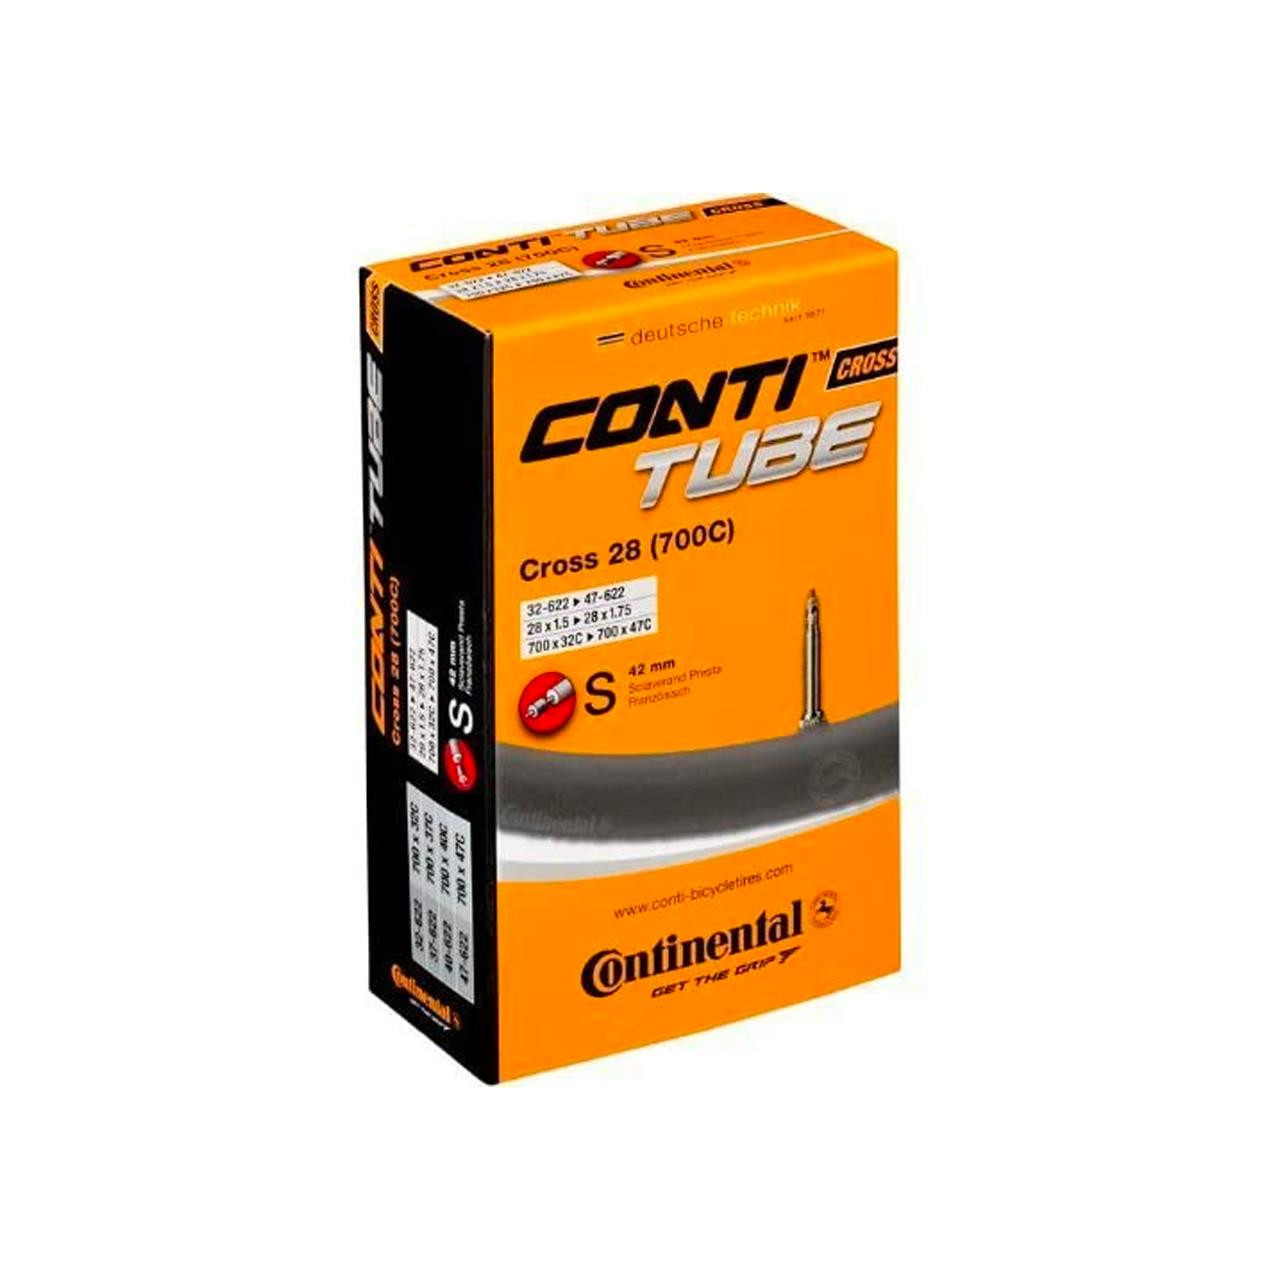 Continental Cross 28 Bicycle Inner Tube (32-47-622)